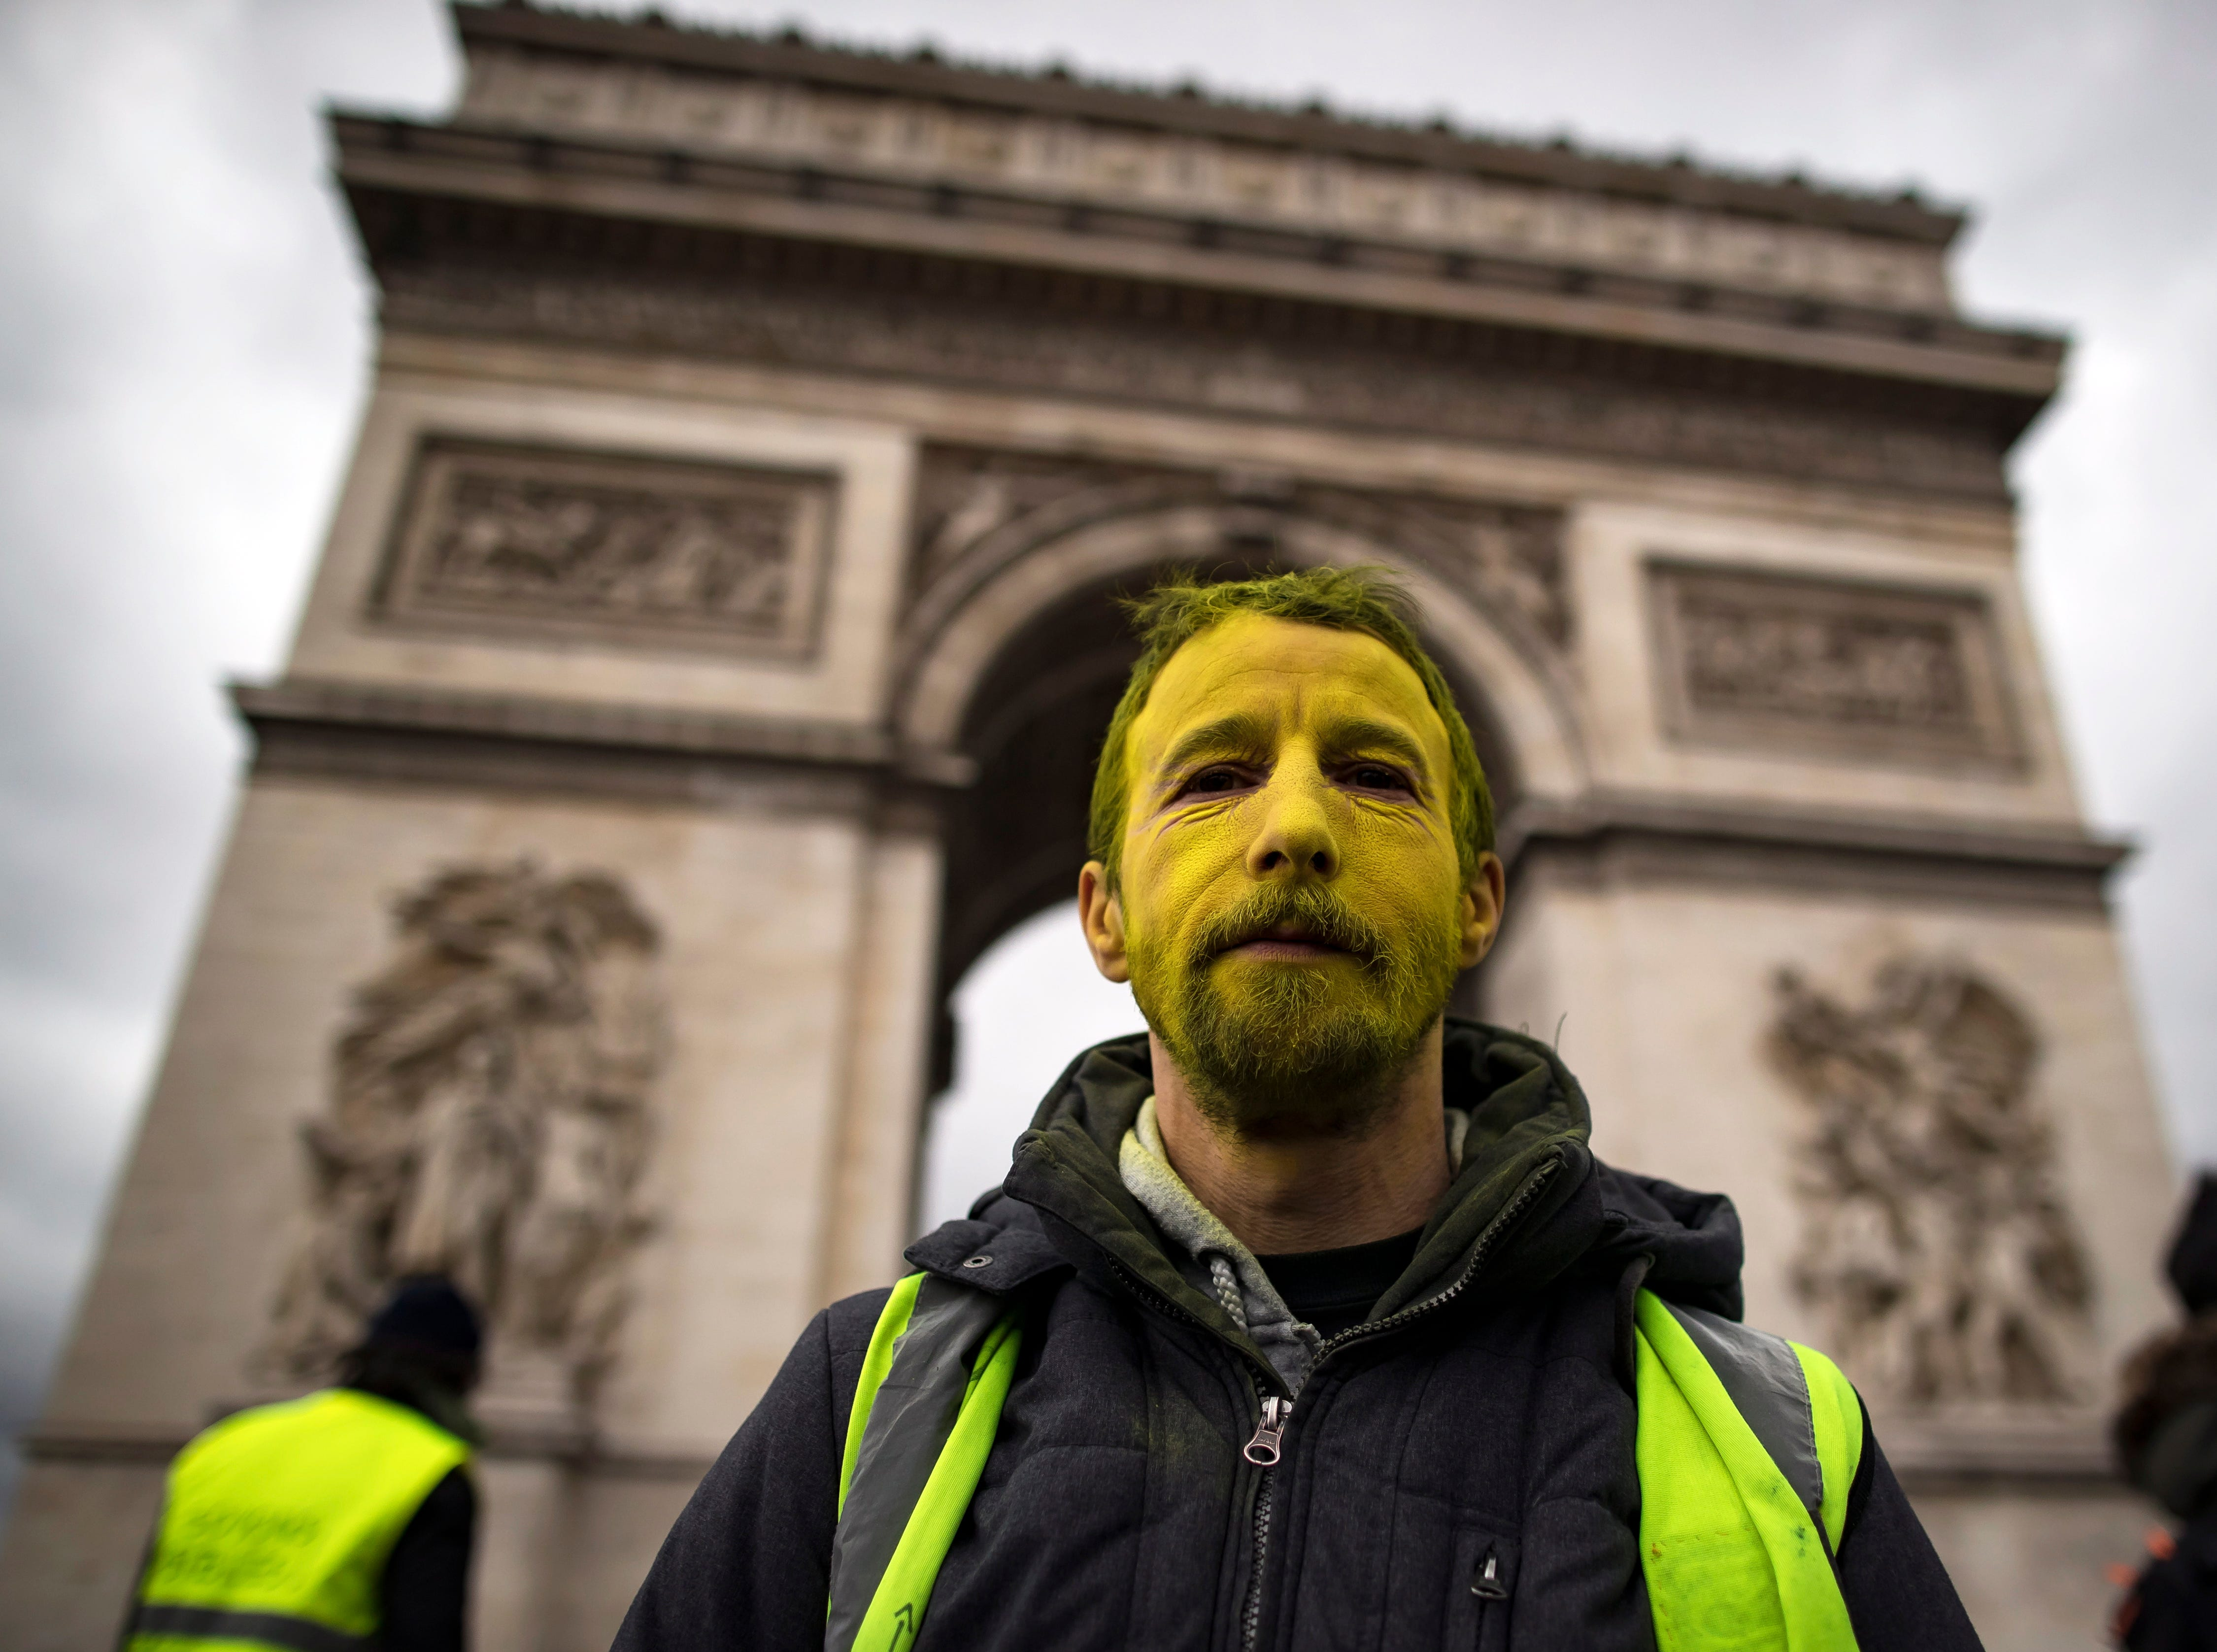 A protester from the 'Gilets Jaunes' (Yellow Vests) movement walks down the Champs Elysees avenue near the Arc de Tiomphe during the 'Act XVII' demonstration in Paris, France on March 9, 2019.